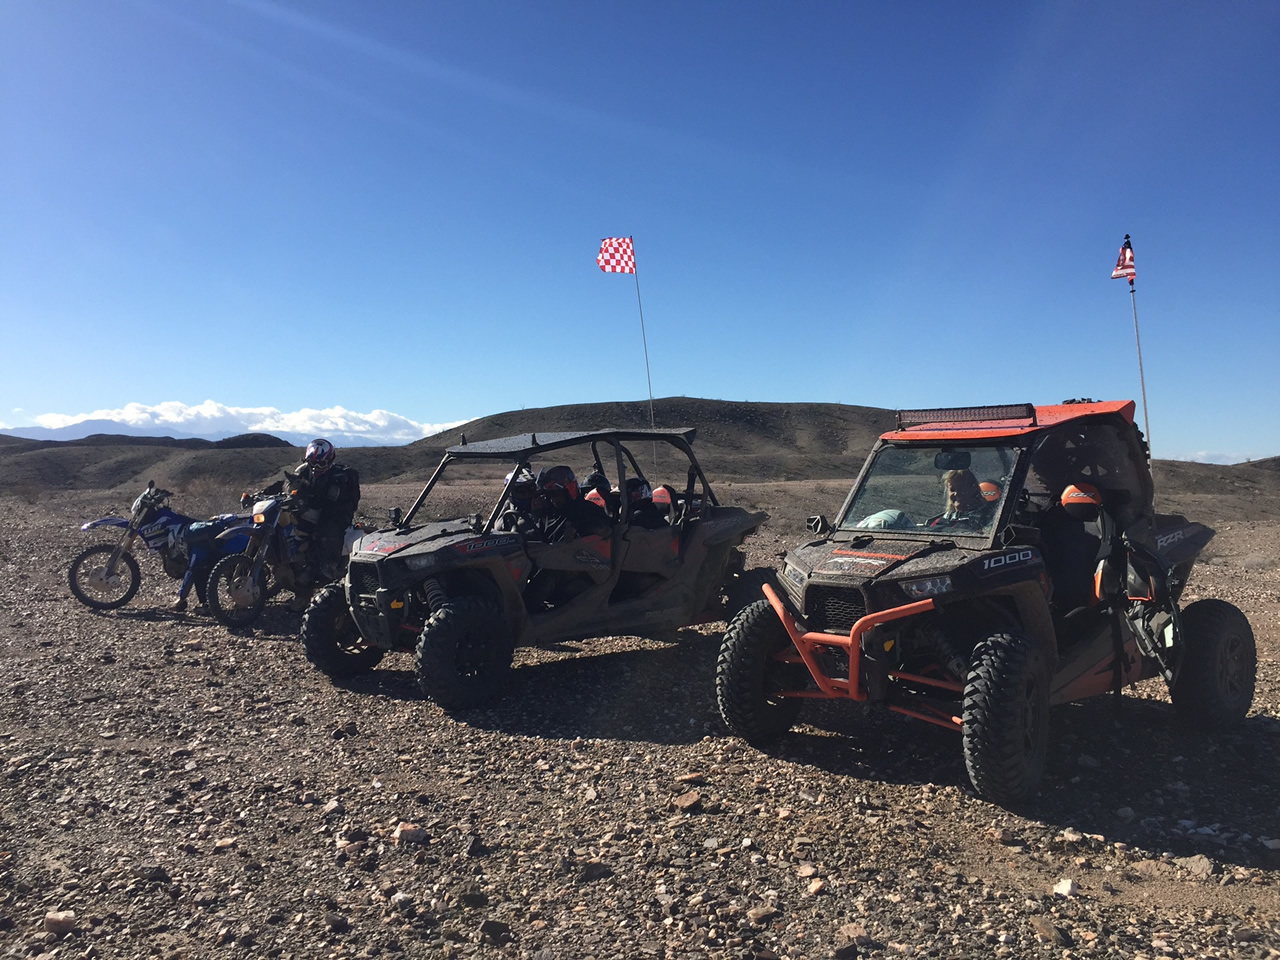 Two motorcycles and two ATV's ready to roll at Glamis North Hot Springs Resort